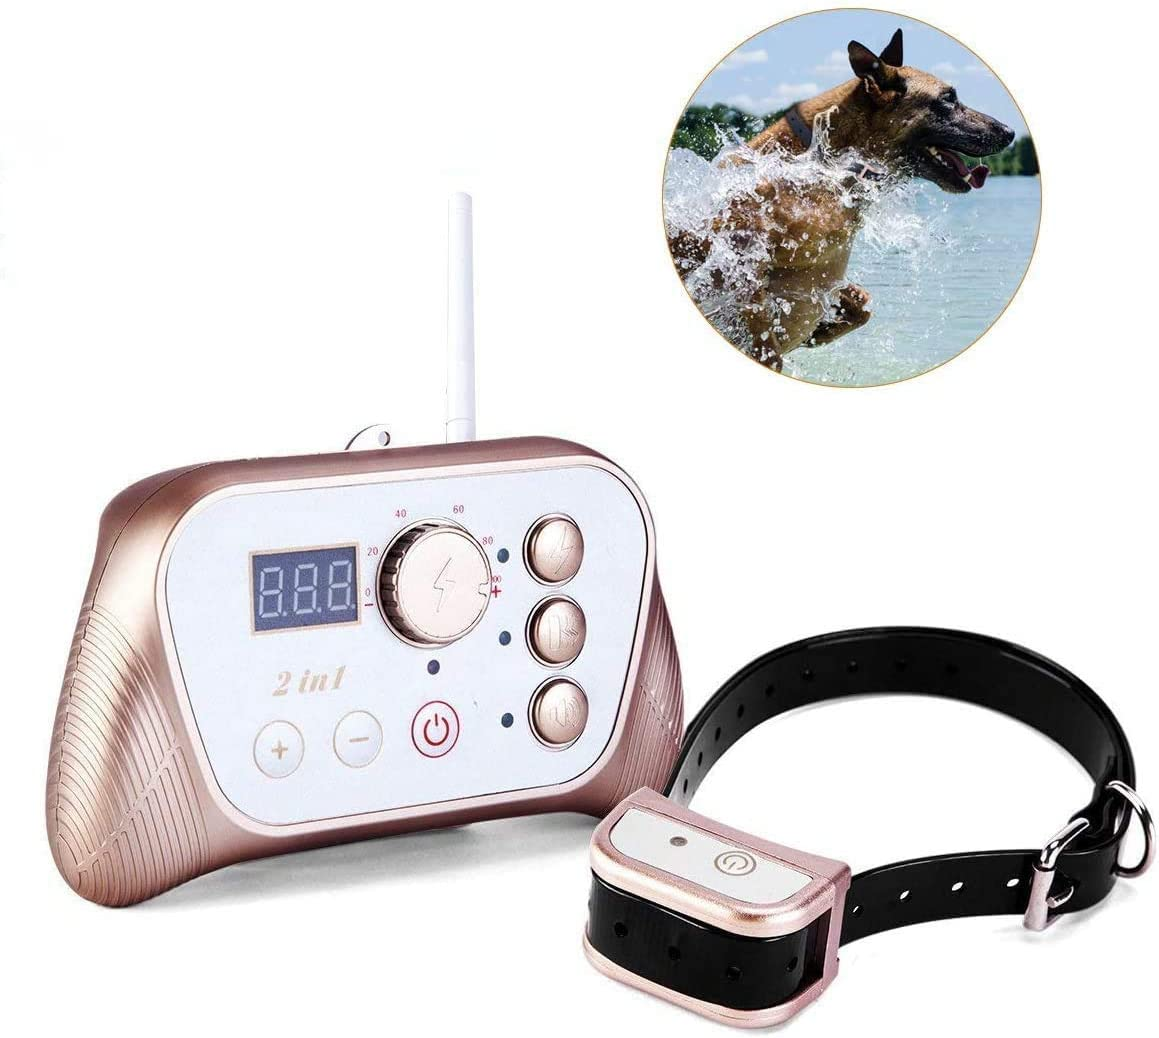 JUSTPET Wireless Fence Dog Containment Training 2 in 1 System, Stable Signal Electric Wireless Pet Fence, Beep/Vibrate/Shock Rechargeable Waterproof Collar